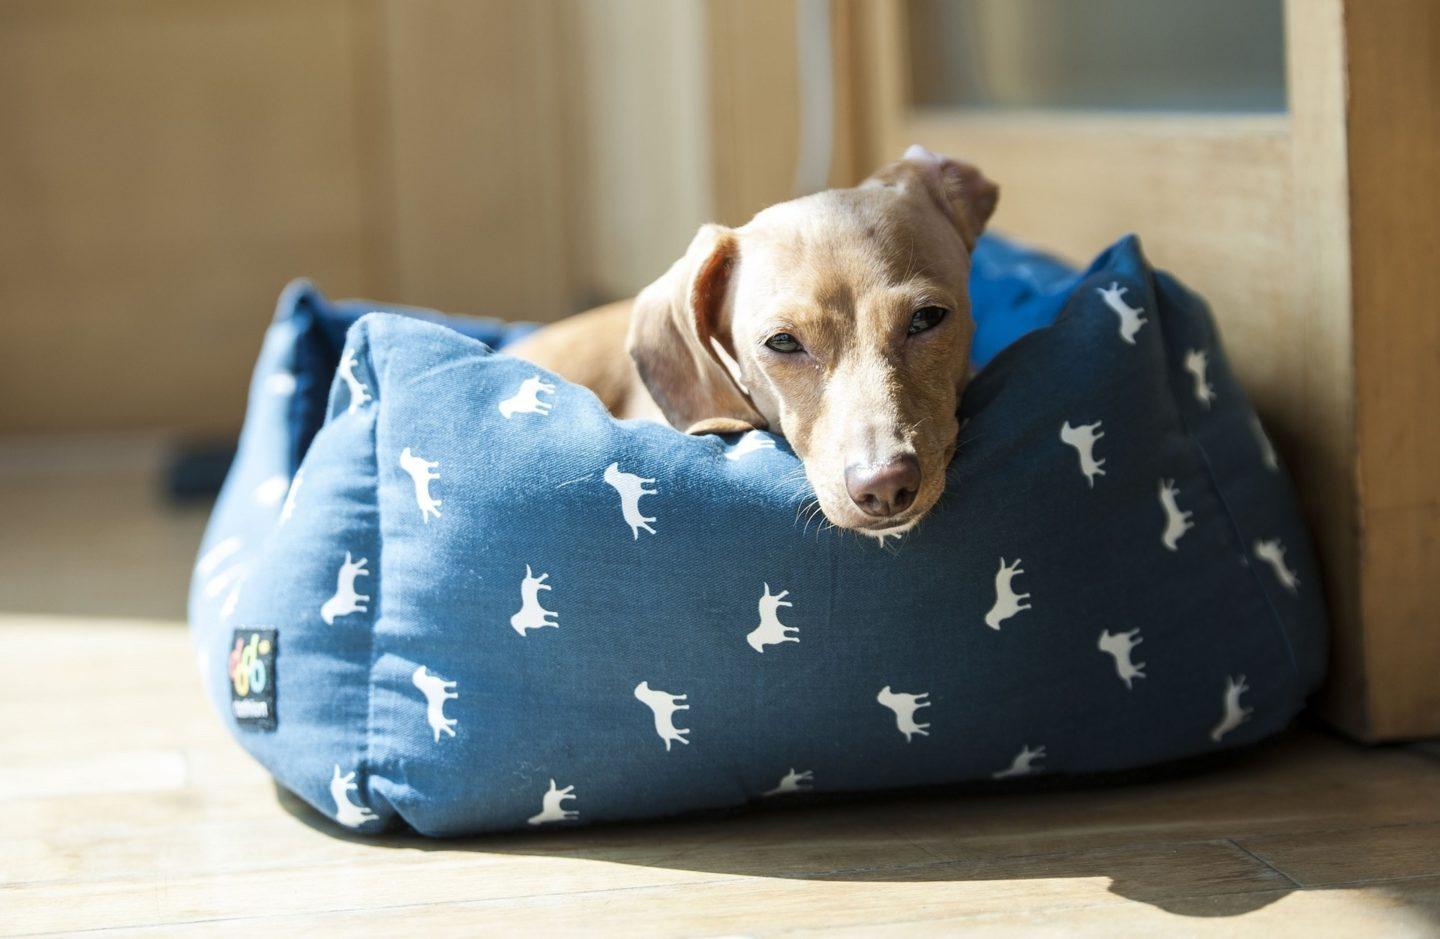 AD: Ideas for Christmas gifts for pets - dog on bed